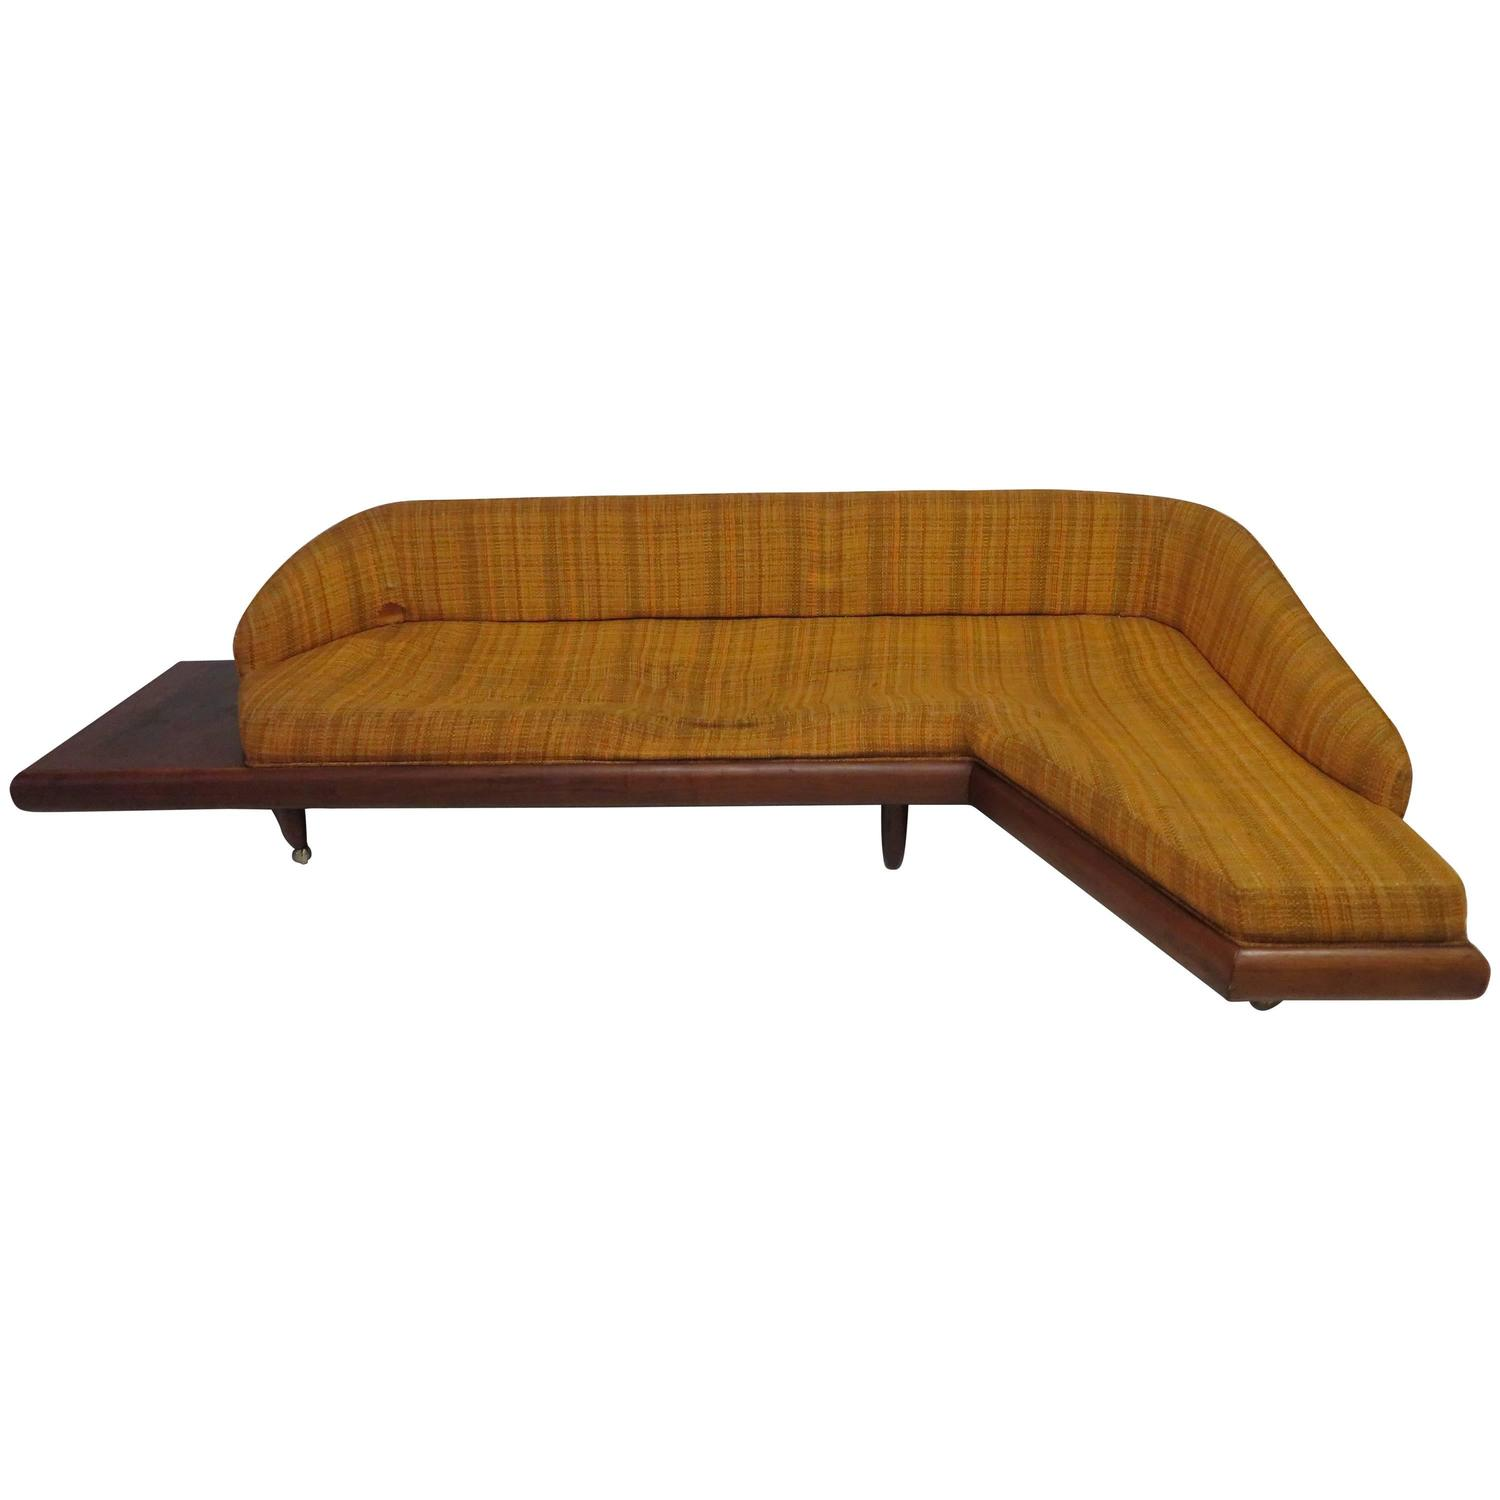 Unusual Sofas For Sale: Unusual Adrian Pearsall Boomarang Sculptural Walnut Sofa